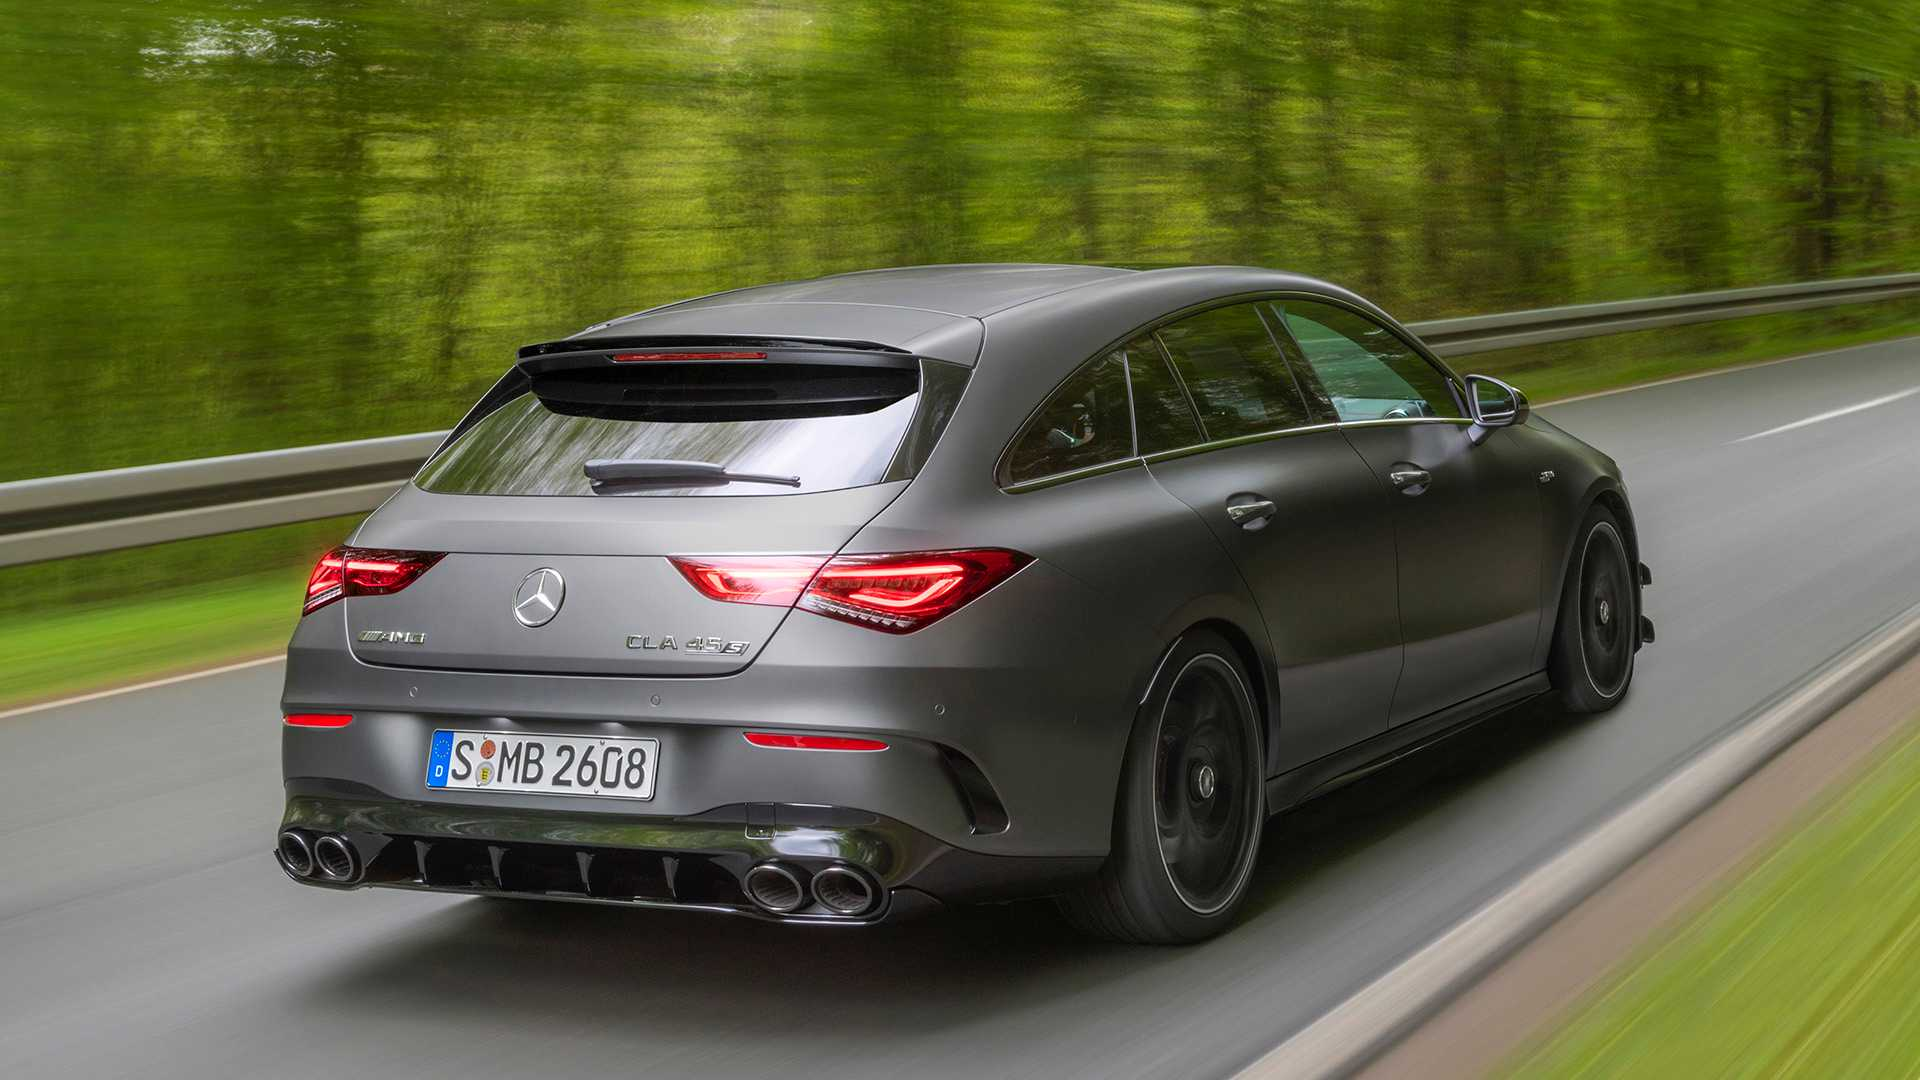 2020 Mercedes-AMG CLA 45 S 4MATIC+ Shooting Brake Rear Three-Quarter Wallpapers (6)